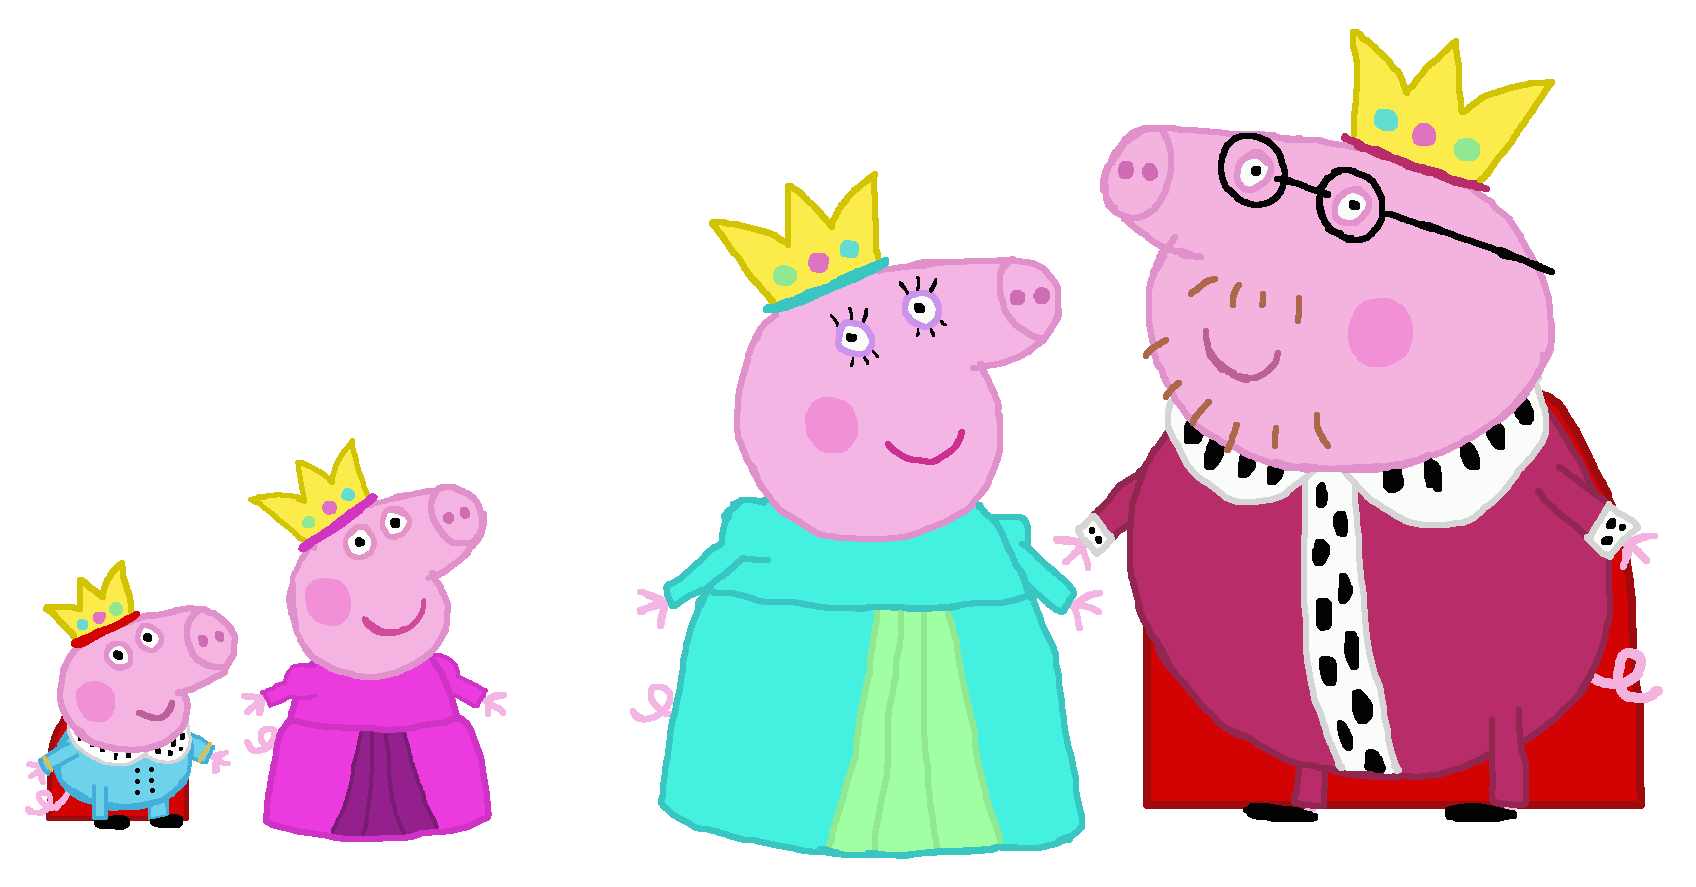 peppa pig images royal family peppa pig hd wallpaper and skunk clip art free black and white skunk clip art black white